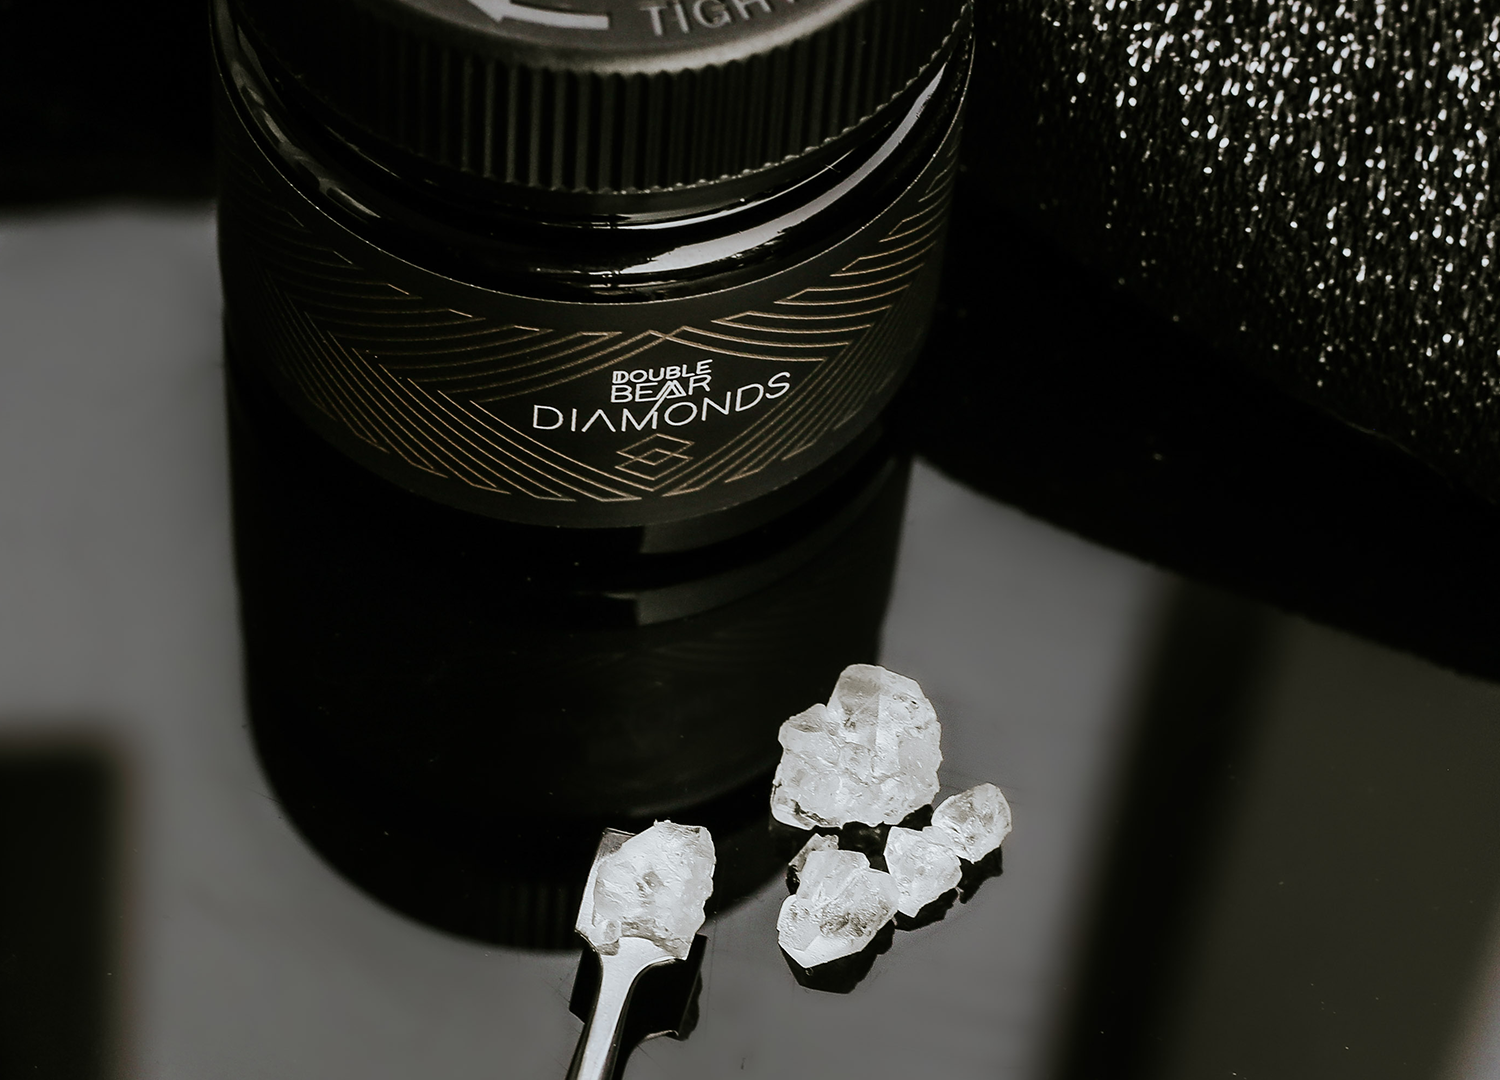 Double Bear Diamonds: A Luxurious Way To Enjoy Extracts